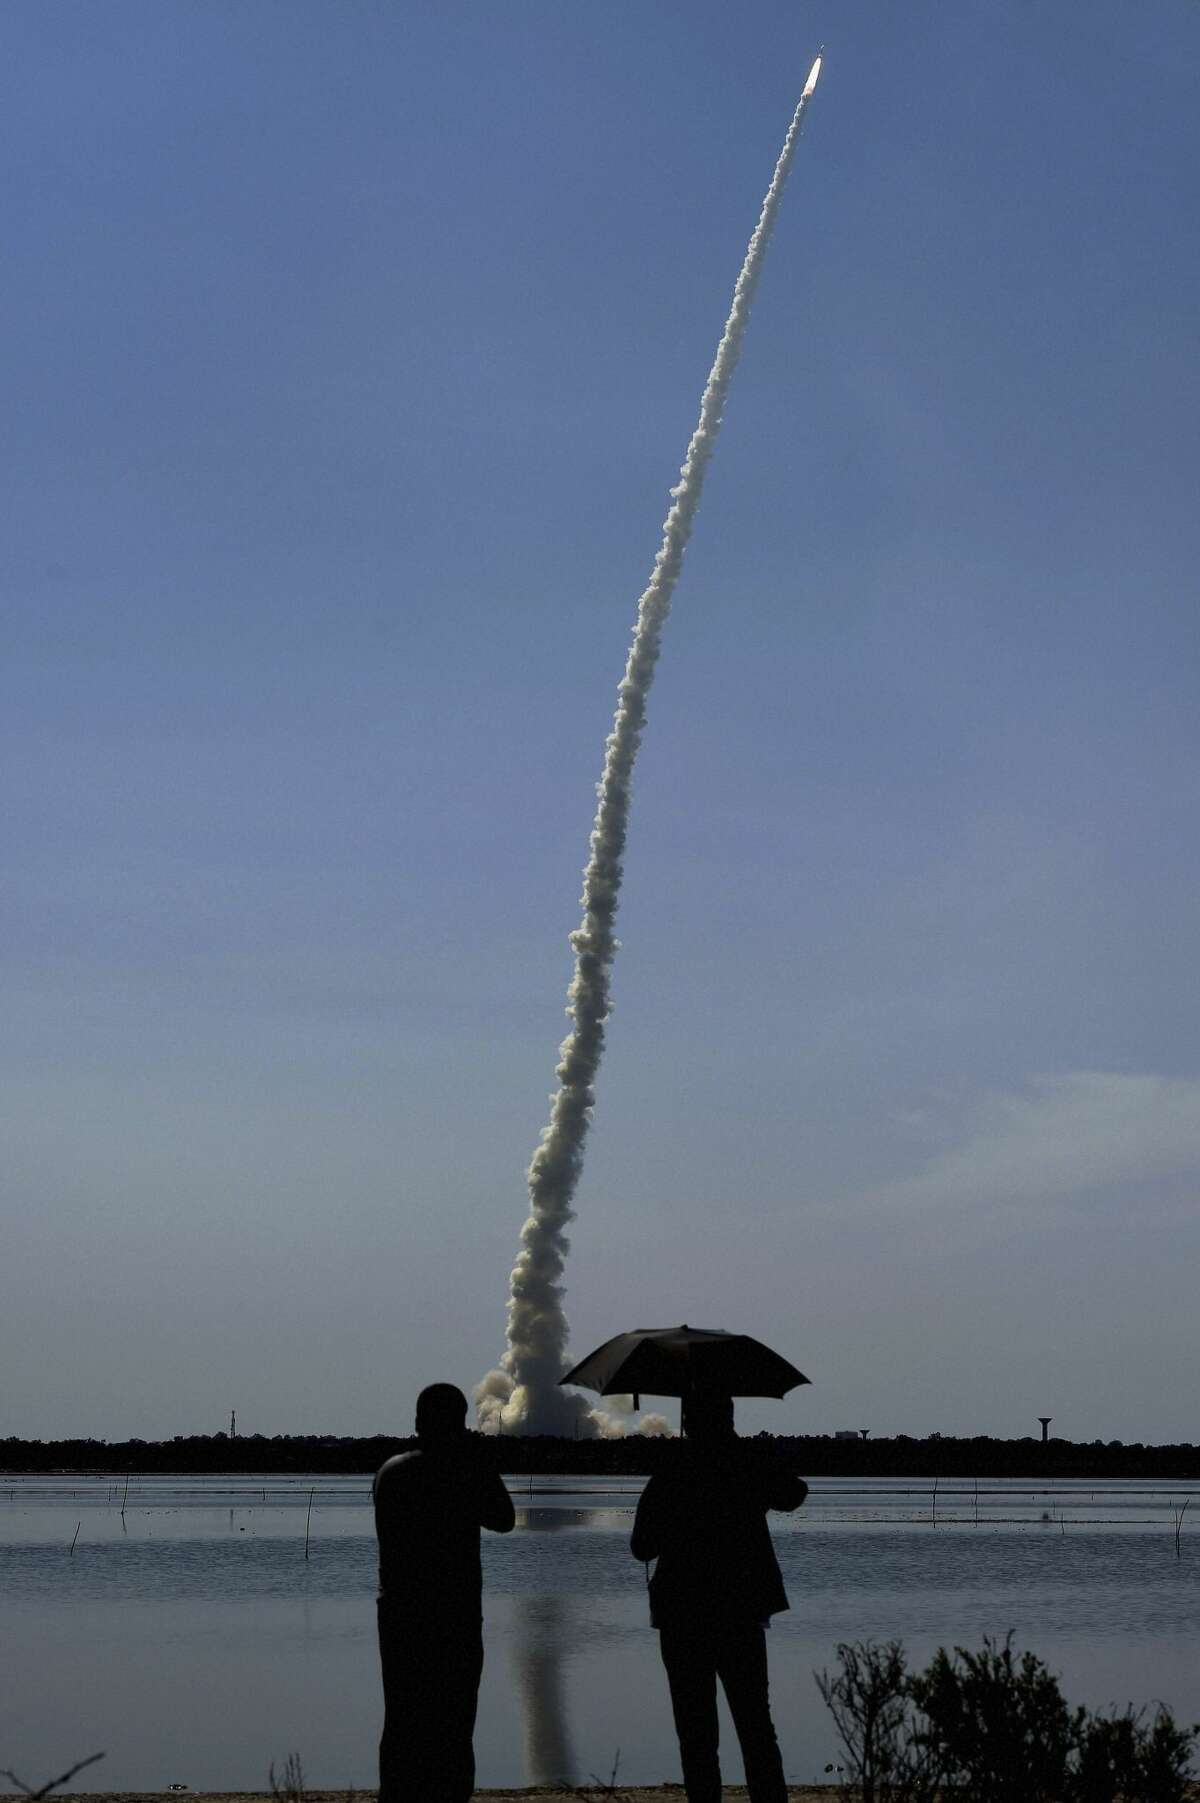 """People watch as Indian Space Research Organization (ISRO)?'s Polar Satellite Launch Vehicle (PSLV C-34) is launched from the Satish Dhawan Space Centre at Sriharikota, India, Wednesday, June 22, 2016. The PSLV-C34 Wednesday successfully launched 20 Satellites in a single flight, an ISRO press release said.  Seattle connection (from news release): Seattle-based """"Spaceflight, the leading provider of integrated launch services for small satellites, today announced it has successfully launched a flock of 12 Planet Dove satellites from India's Polar Satellite Launch Vehicle (PSLV). The 12 spacecraft are shoebox-sized satellites that will be delivered into lower Earth orbit to provide imaging data.""""  (R Senthil Kumar /Press Trust of India via AP)"""